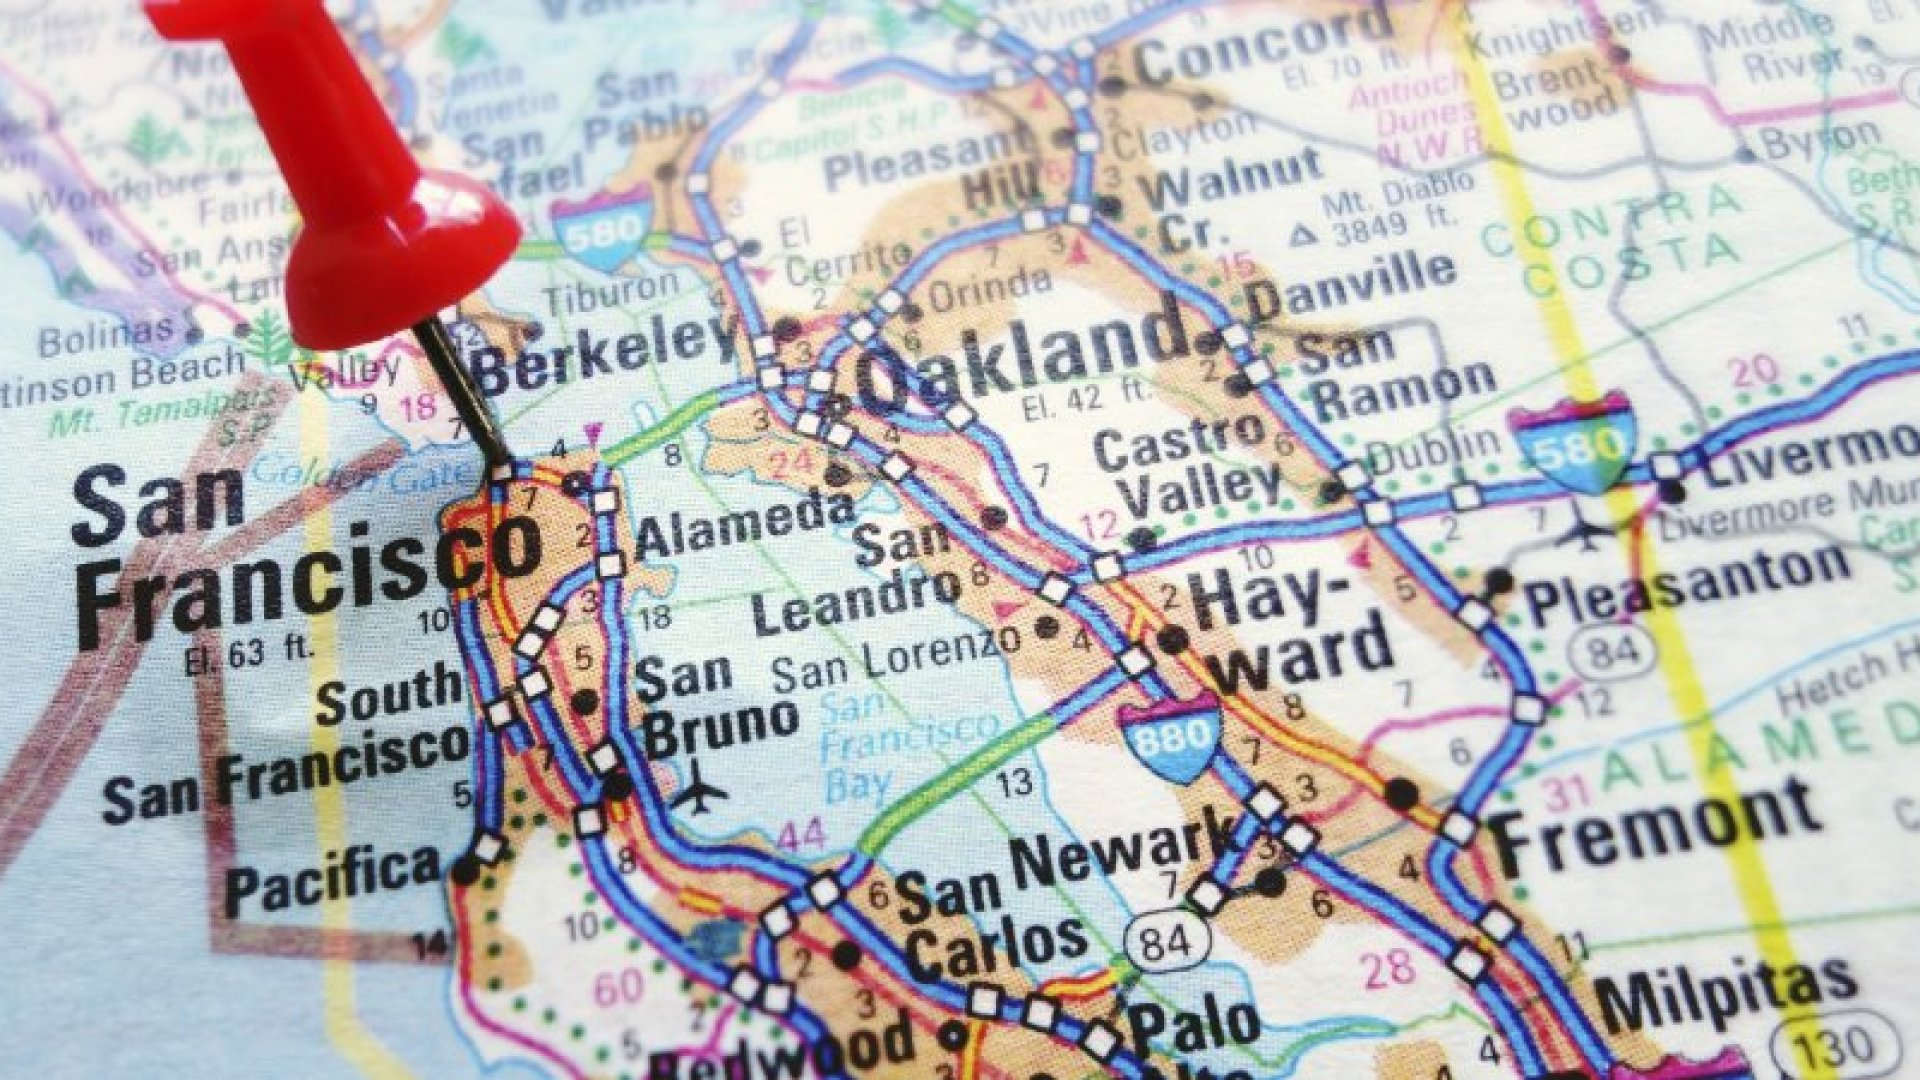 To Find Real Innovation, Look Beyond Silicon Valley